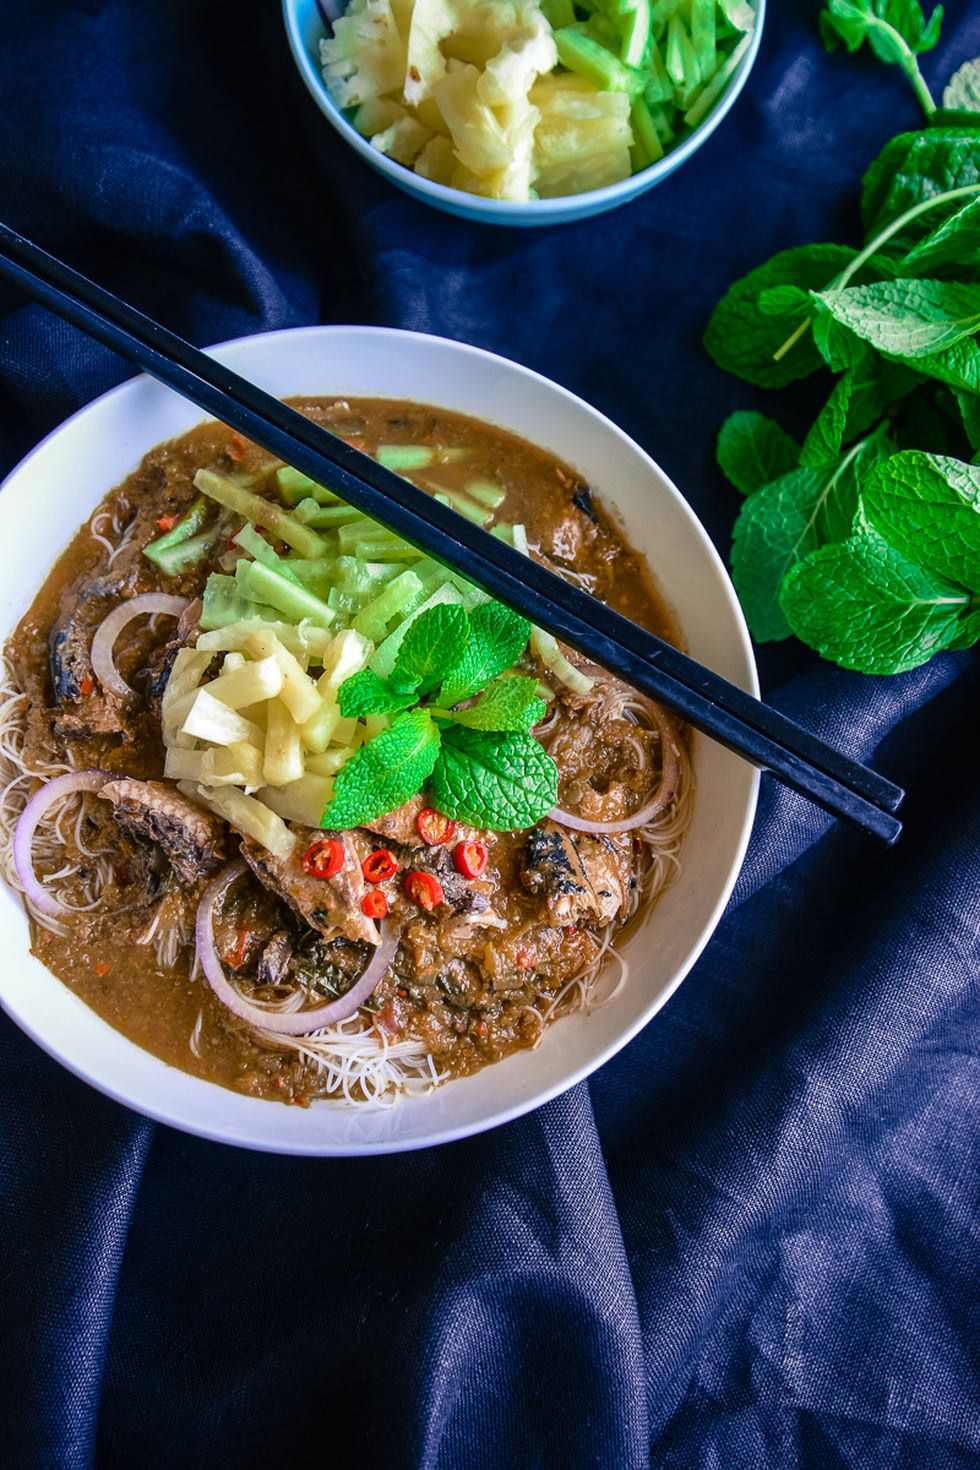 Penang Assam Laksa for Father's Day Food, Evening meals